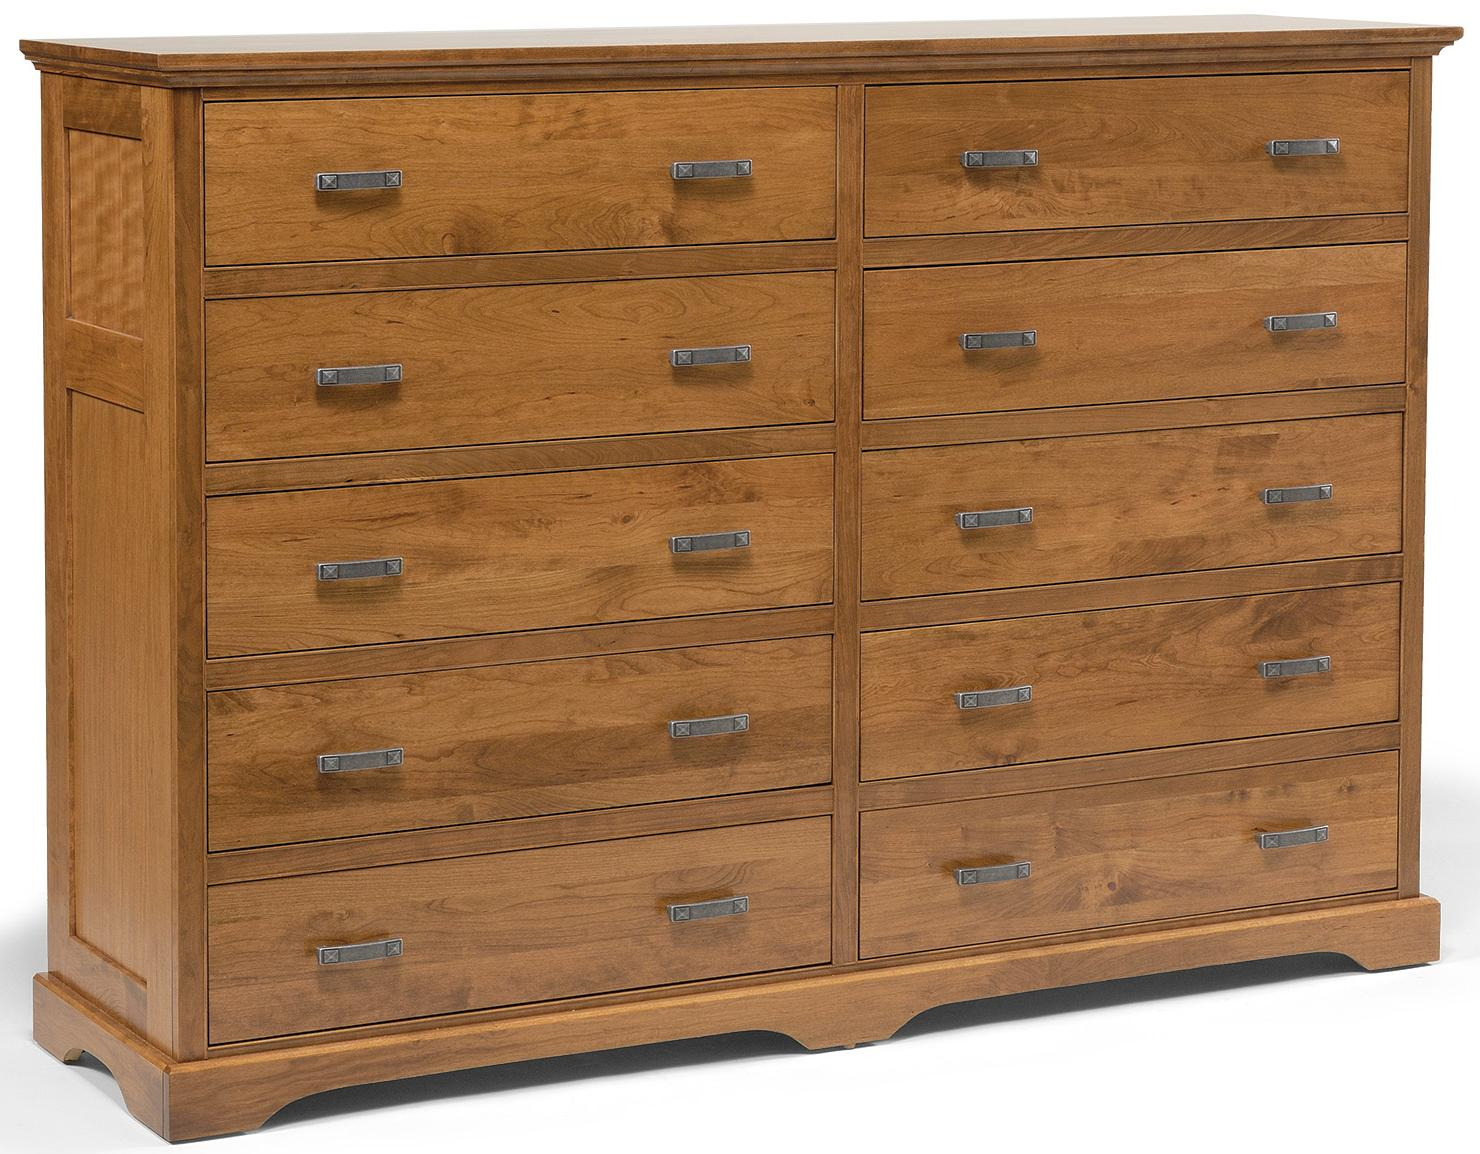 Elegance 10-Drawer Double Dresser by Daniel's Amish at Lapeer Furniture & Mattress Center